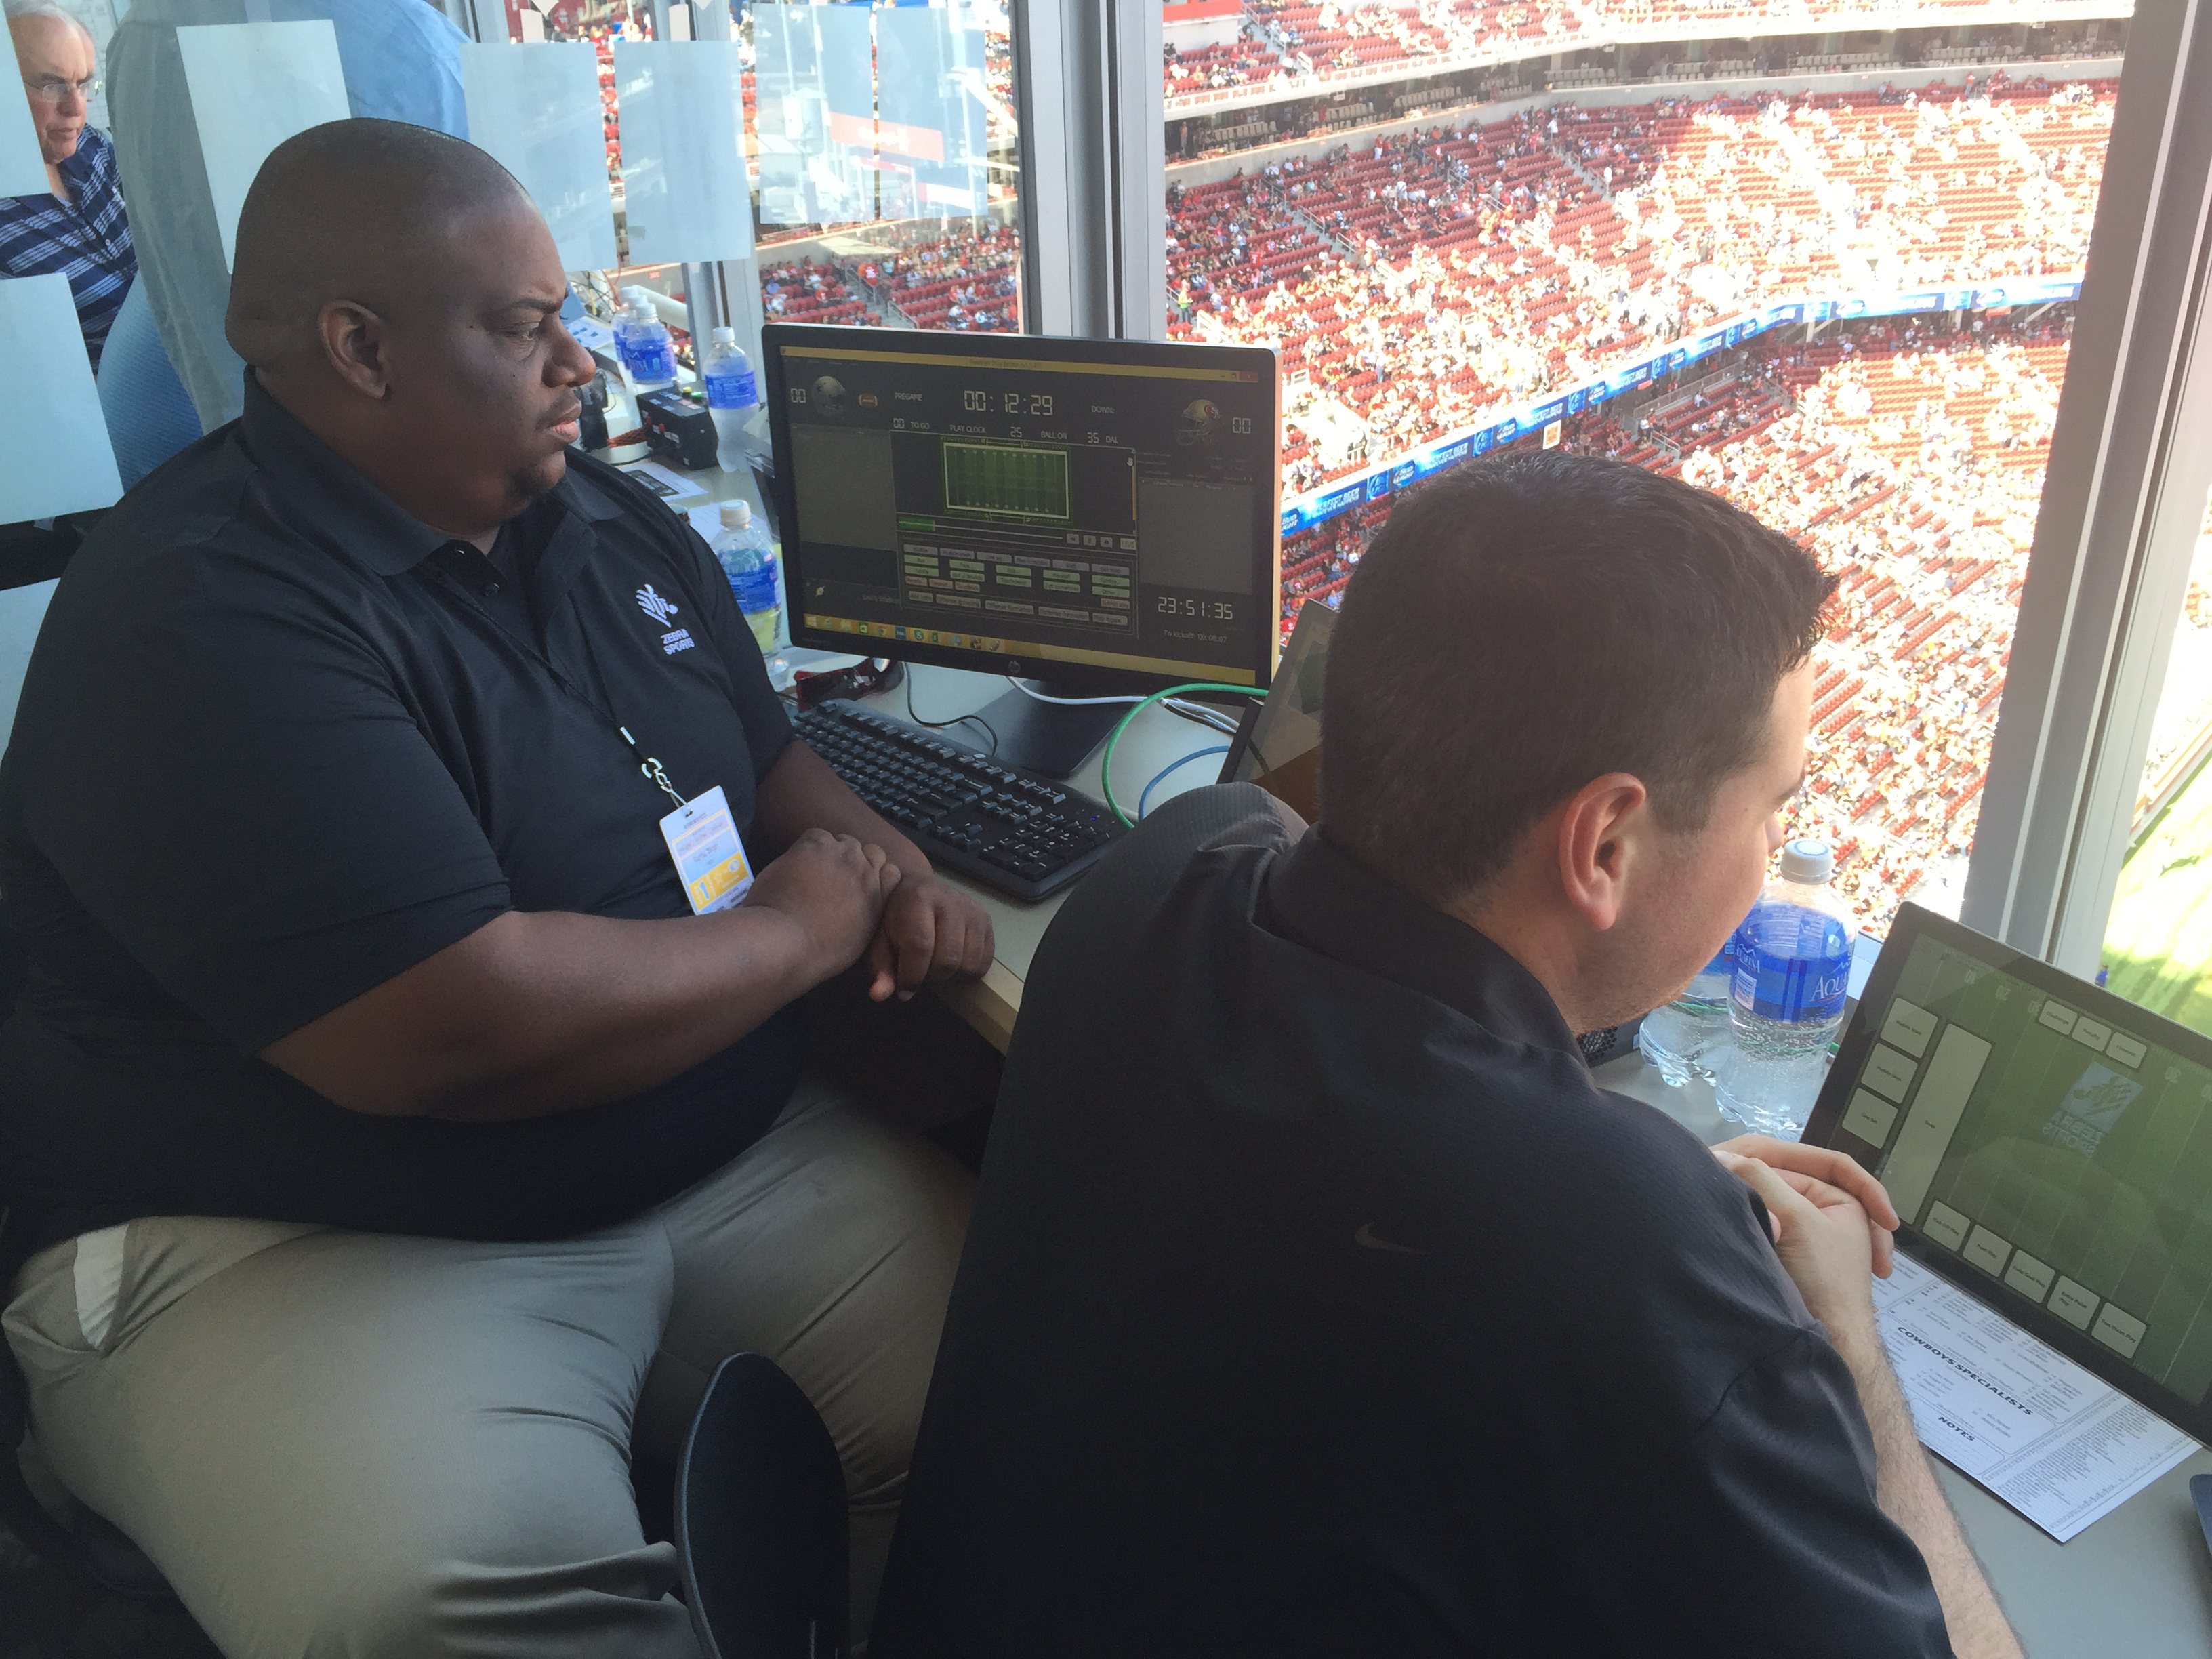 Zebra staff making sure the tech is working at Levi's Stadium during a preseason game.